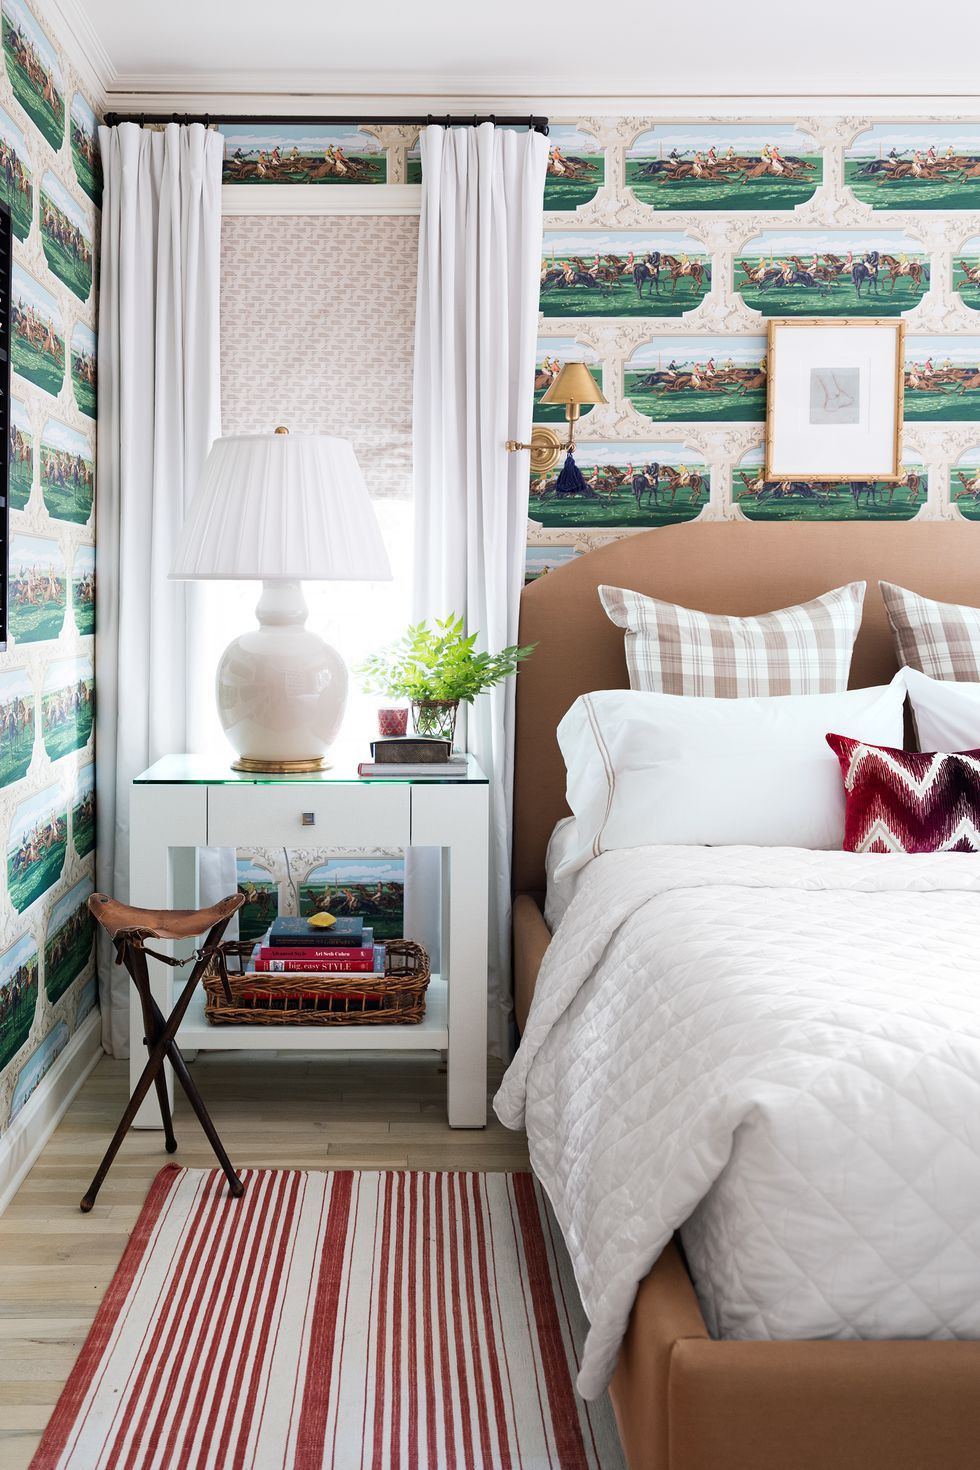 Modern Small Bedroom Designs New 25 Small Bedroom Design Ideas How to Decorate A Small Bedroom